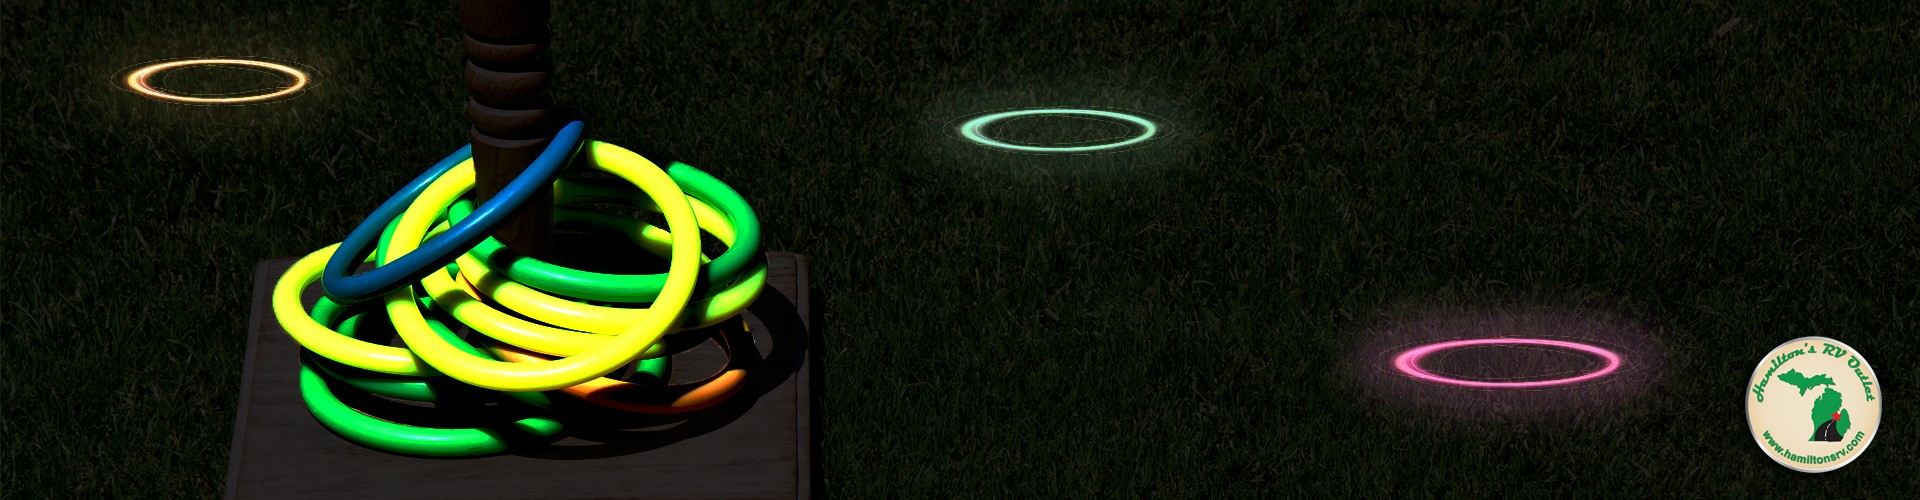 Glow in the dark ring toss kids game